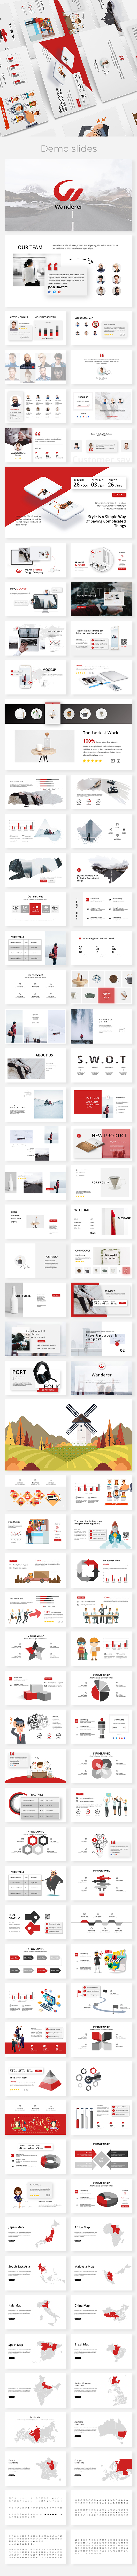 Wanderer Creative Google Slide Template - Google Slides Presentation Templates